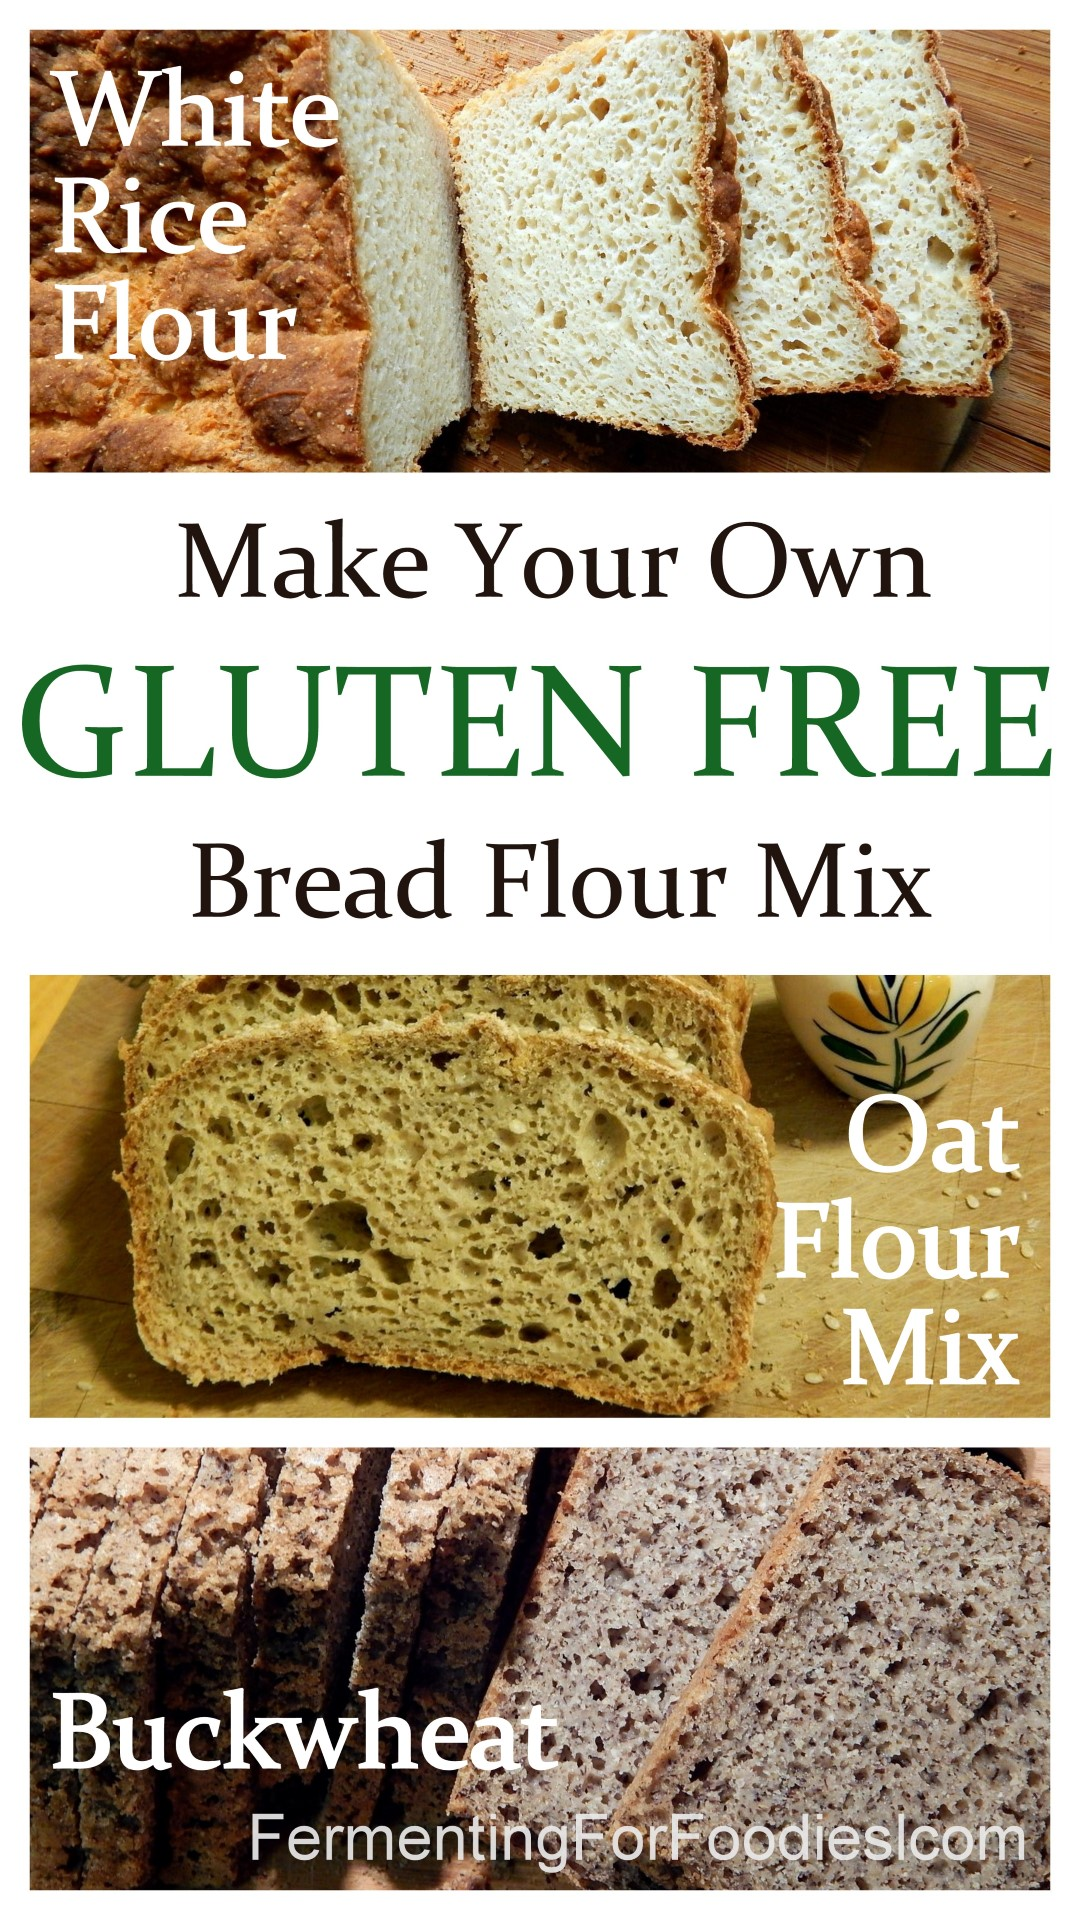 A perfect flour mix for sourdough bread whether you use oat, rice or buckwheat.